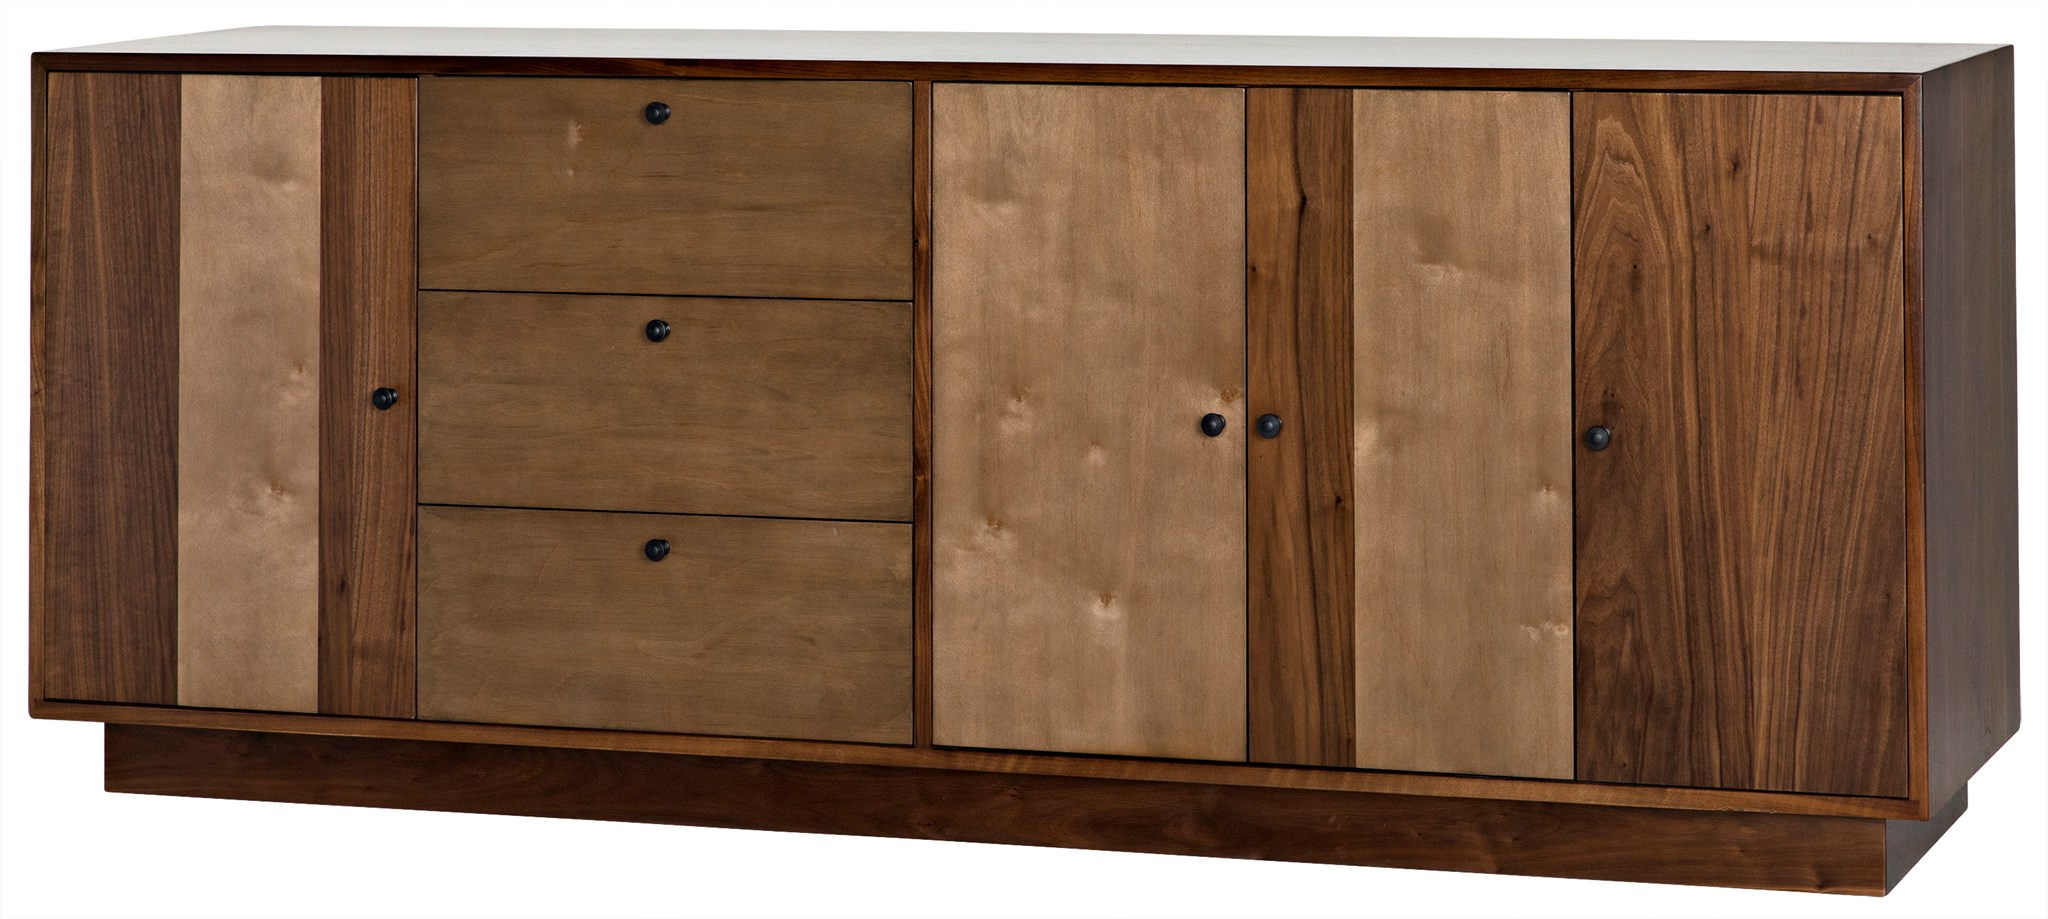 Cfc :: For Preferred Walnut Finish 4 Door Sideboards (View 7 of 20)